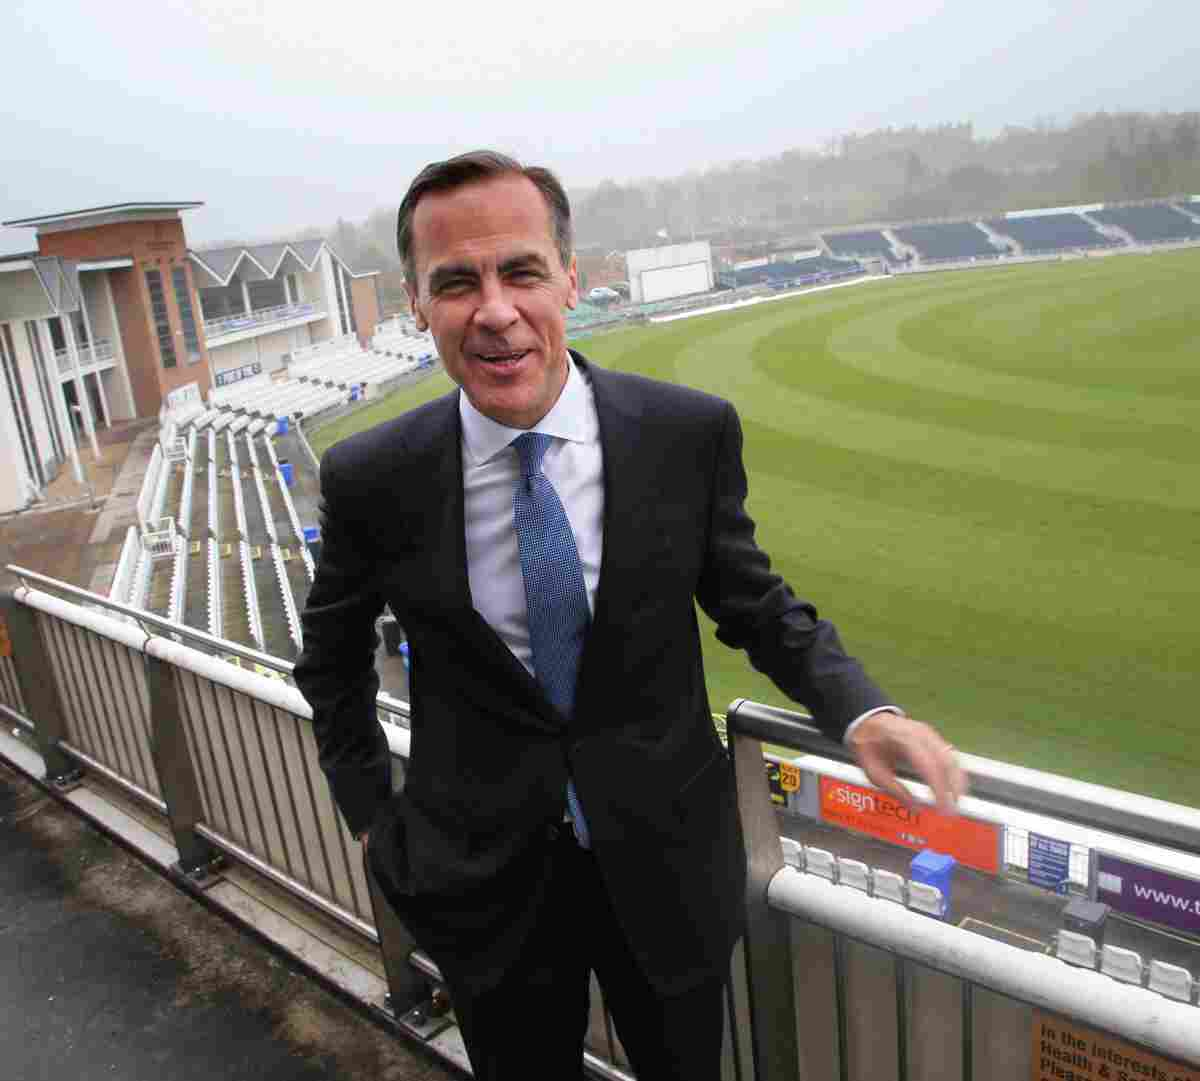 Mark Carney, Governor of the Bank of England at the cricket ground in Chester-le-Street.